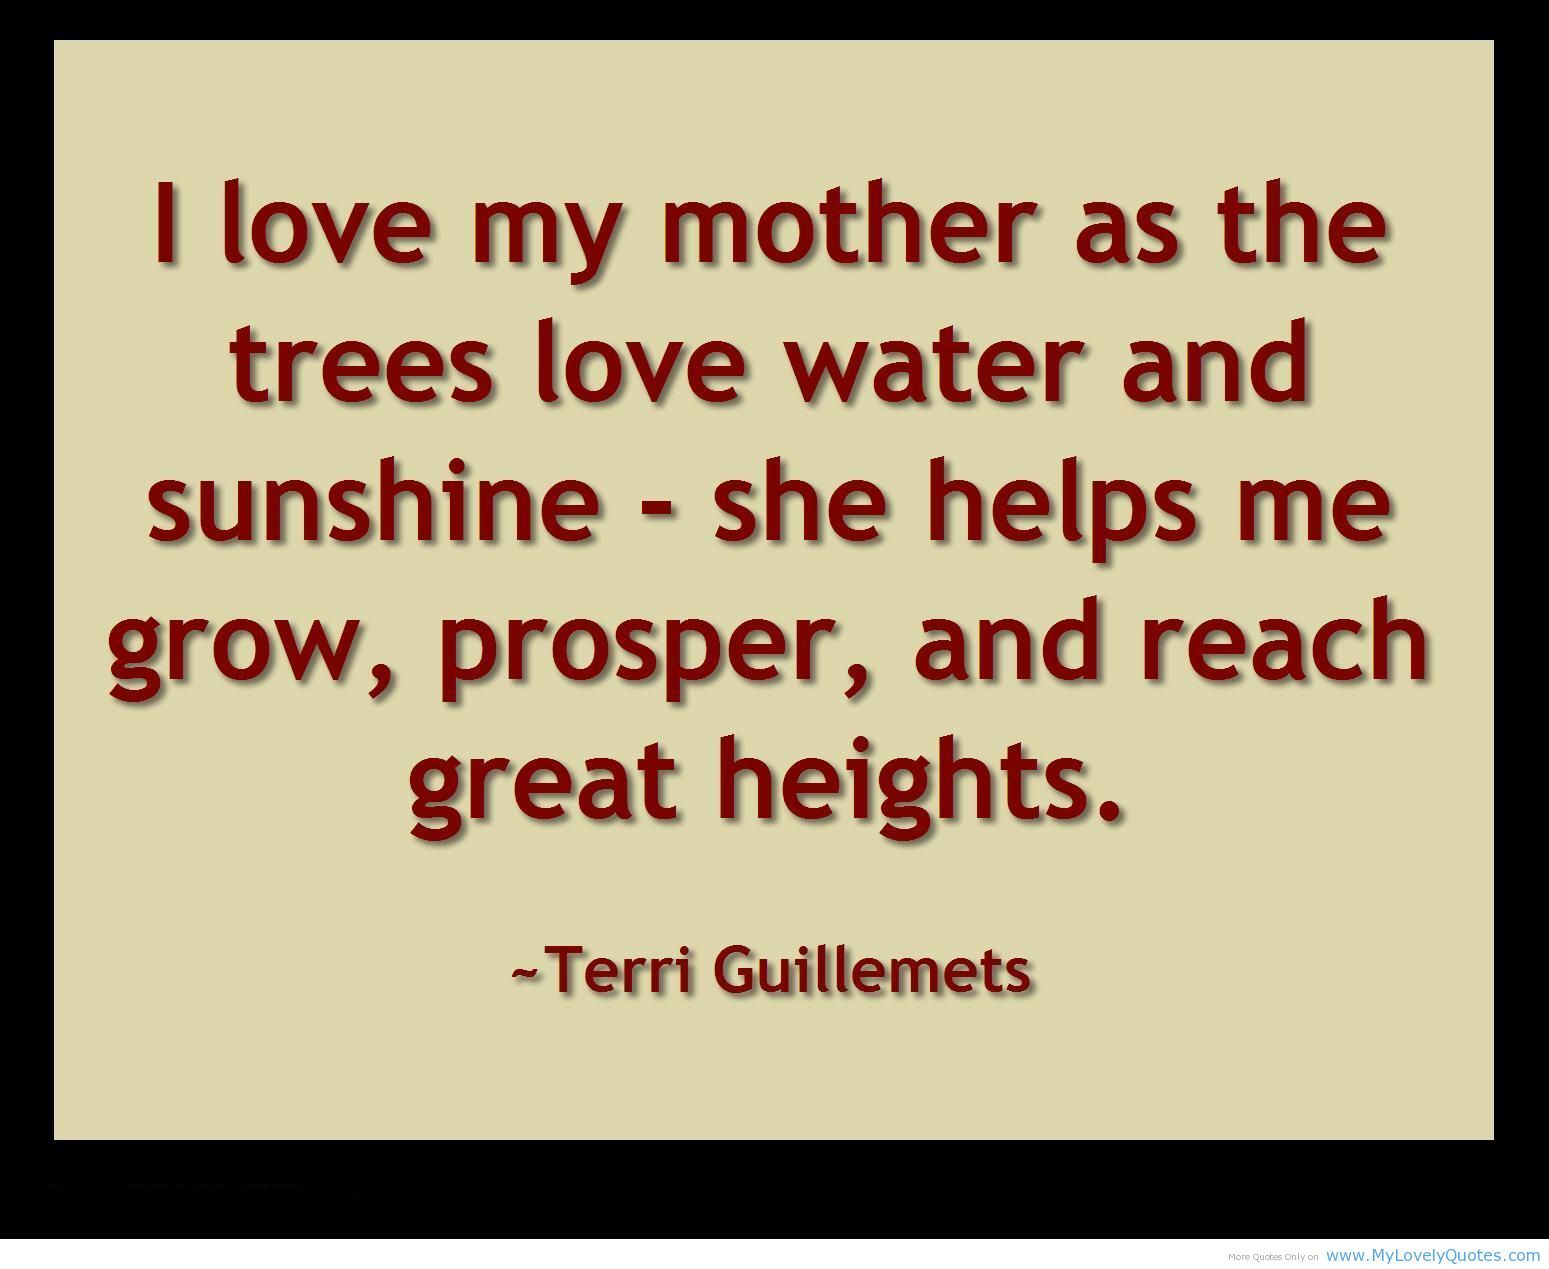 Quotes About Mothers Love #maternityquotes Http://www